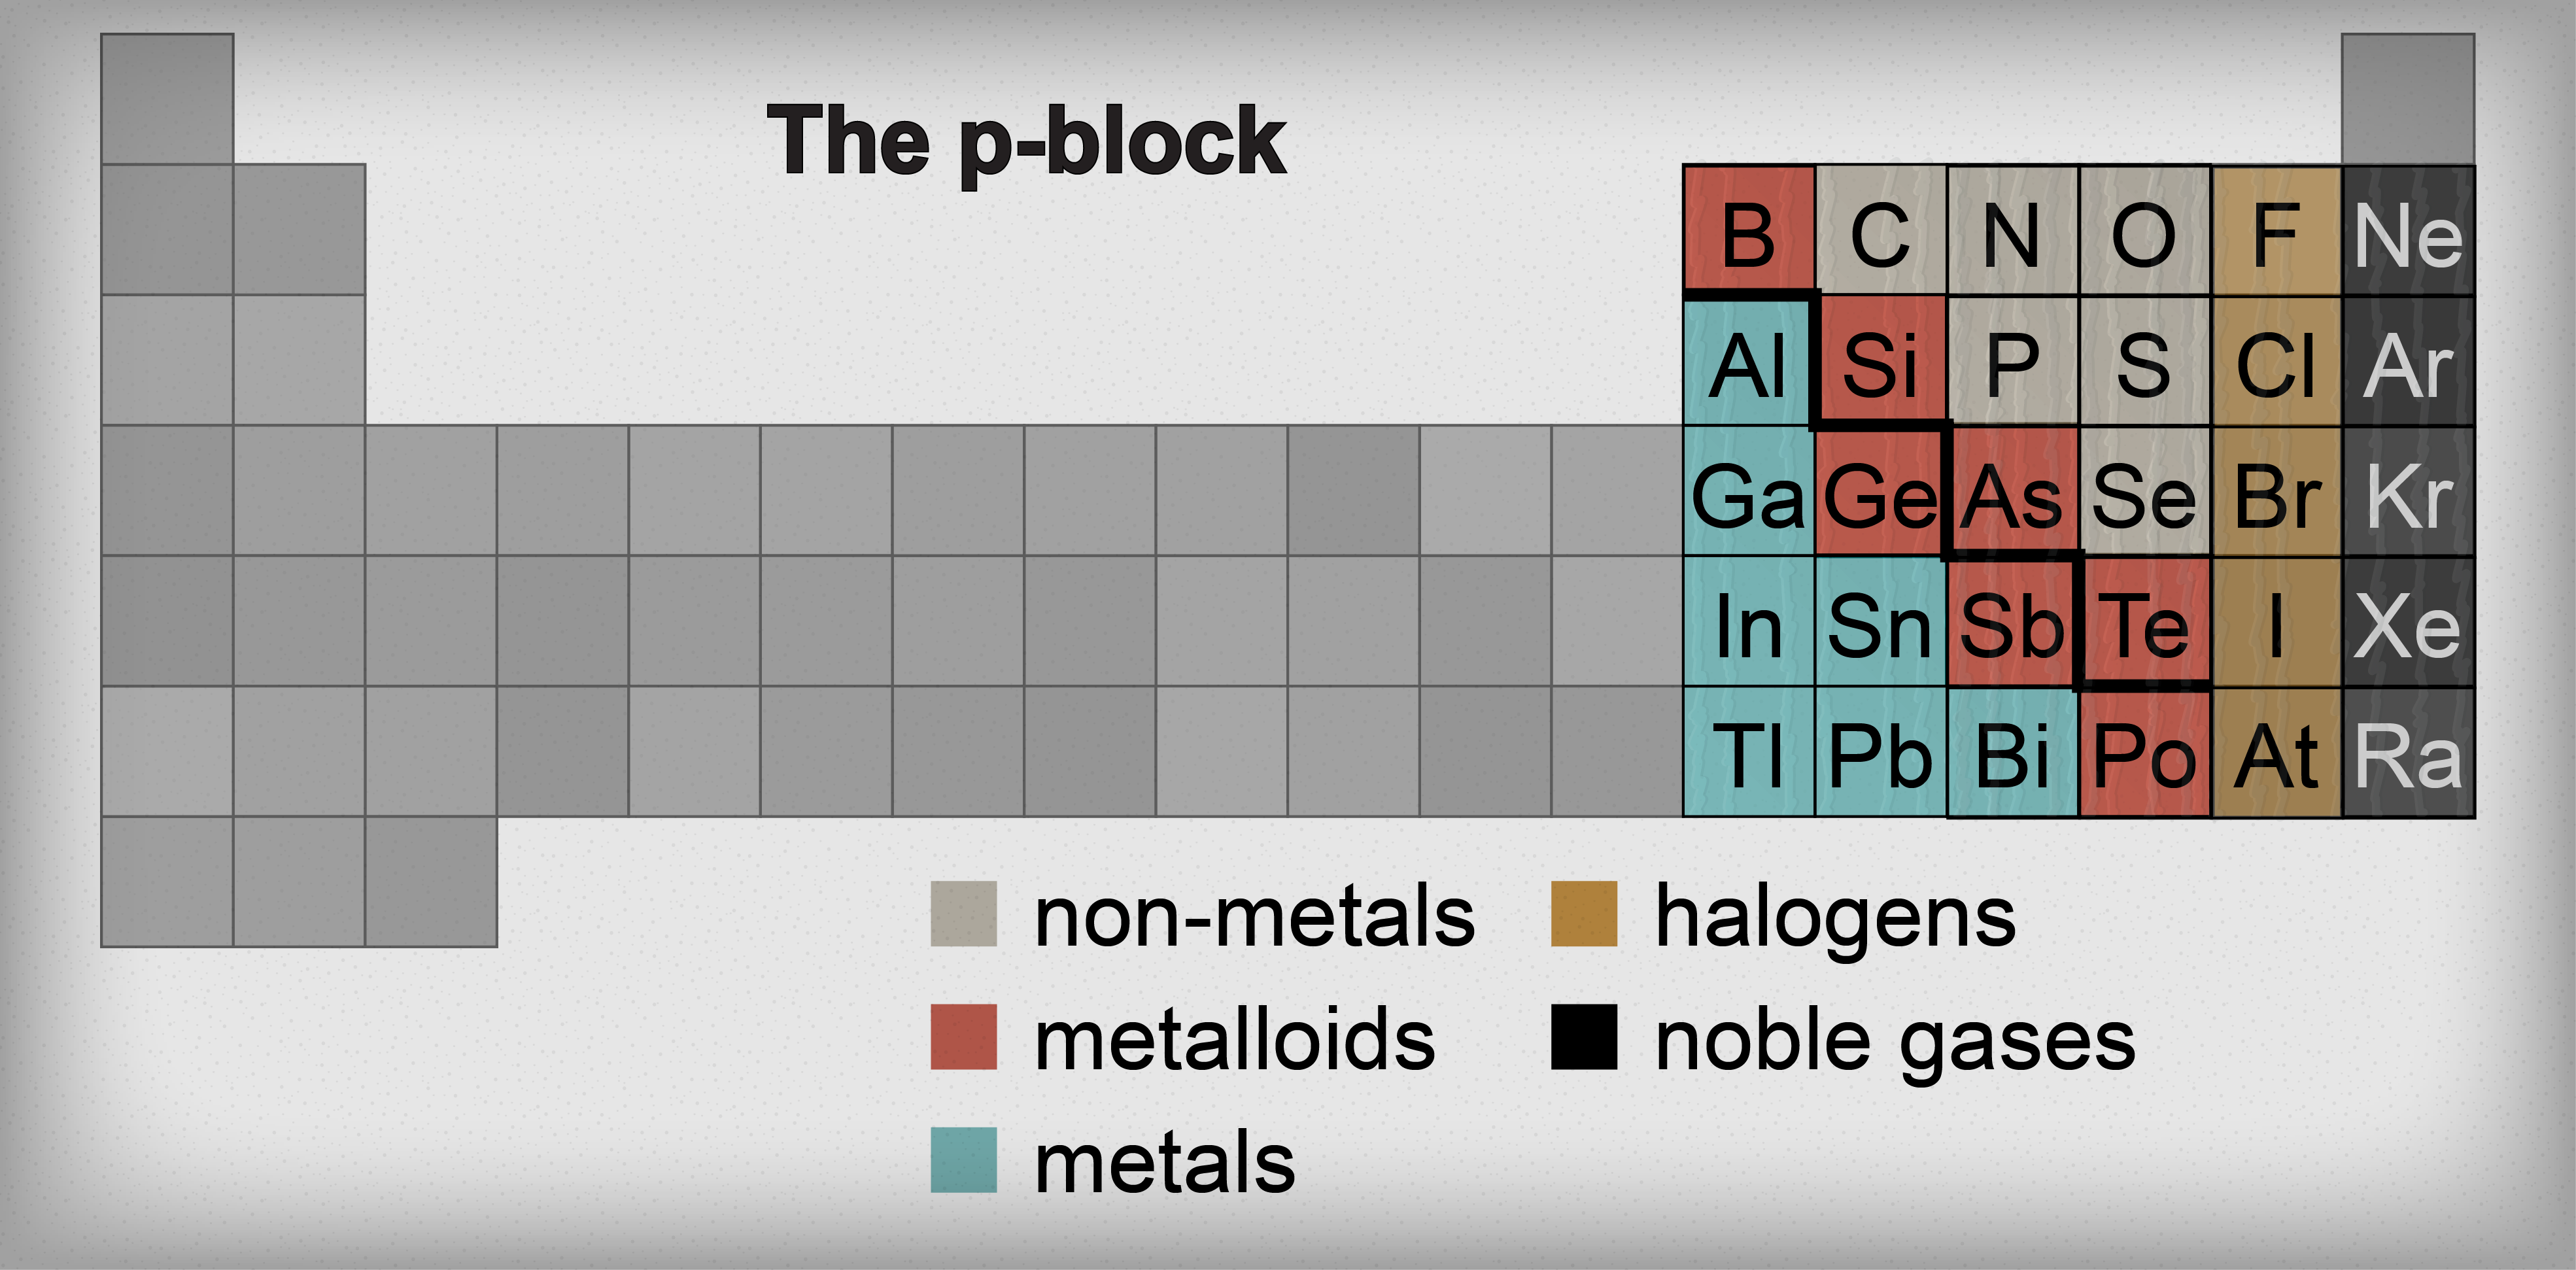 Chemistry metals metalloids and non metals shmoop chemistry our next stop on this chemistry train o fun is the p block in this section dividing elements into columns is so 2000 and late gamestrikefo Images